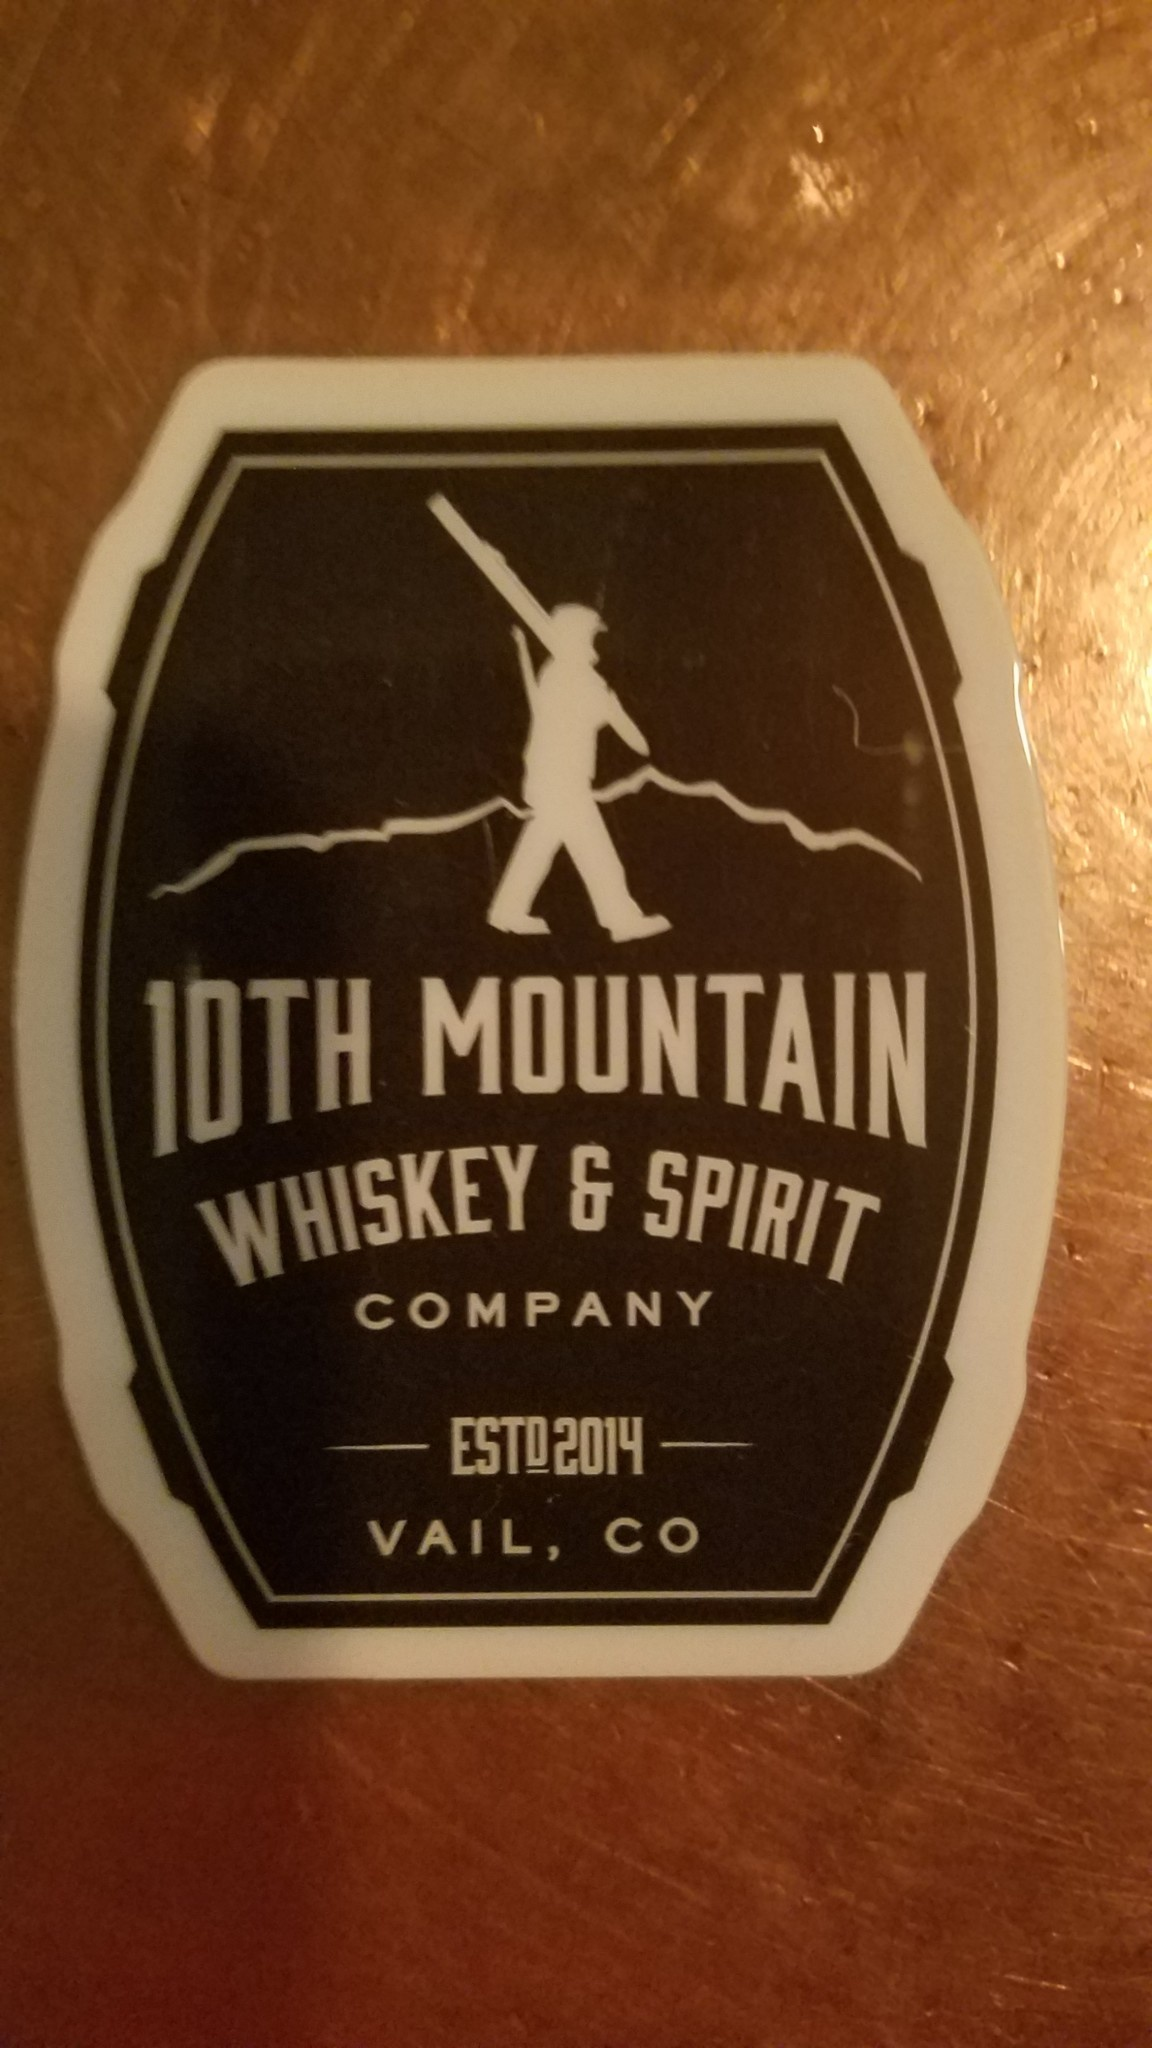 10th Mountain Whiskey & Spirit Co. Gift Card $25